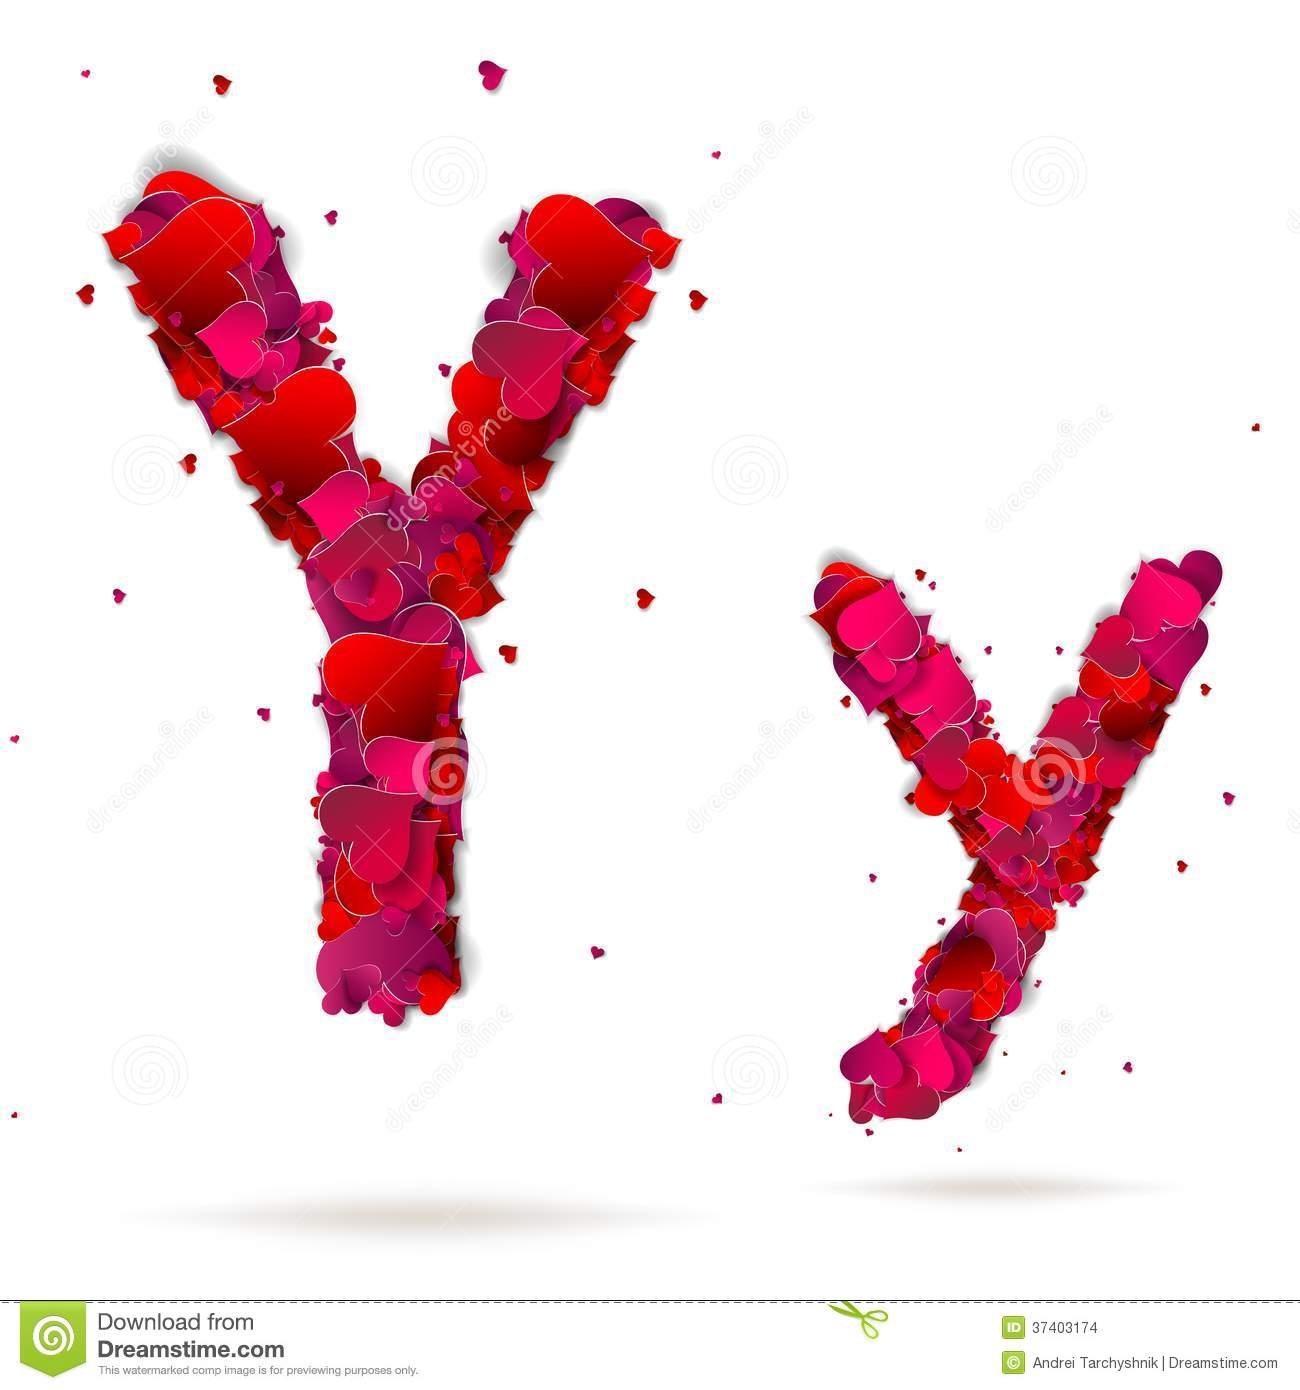 y letter images love - photo #9